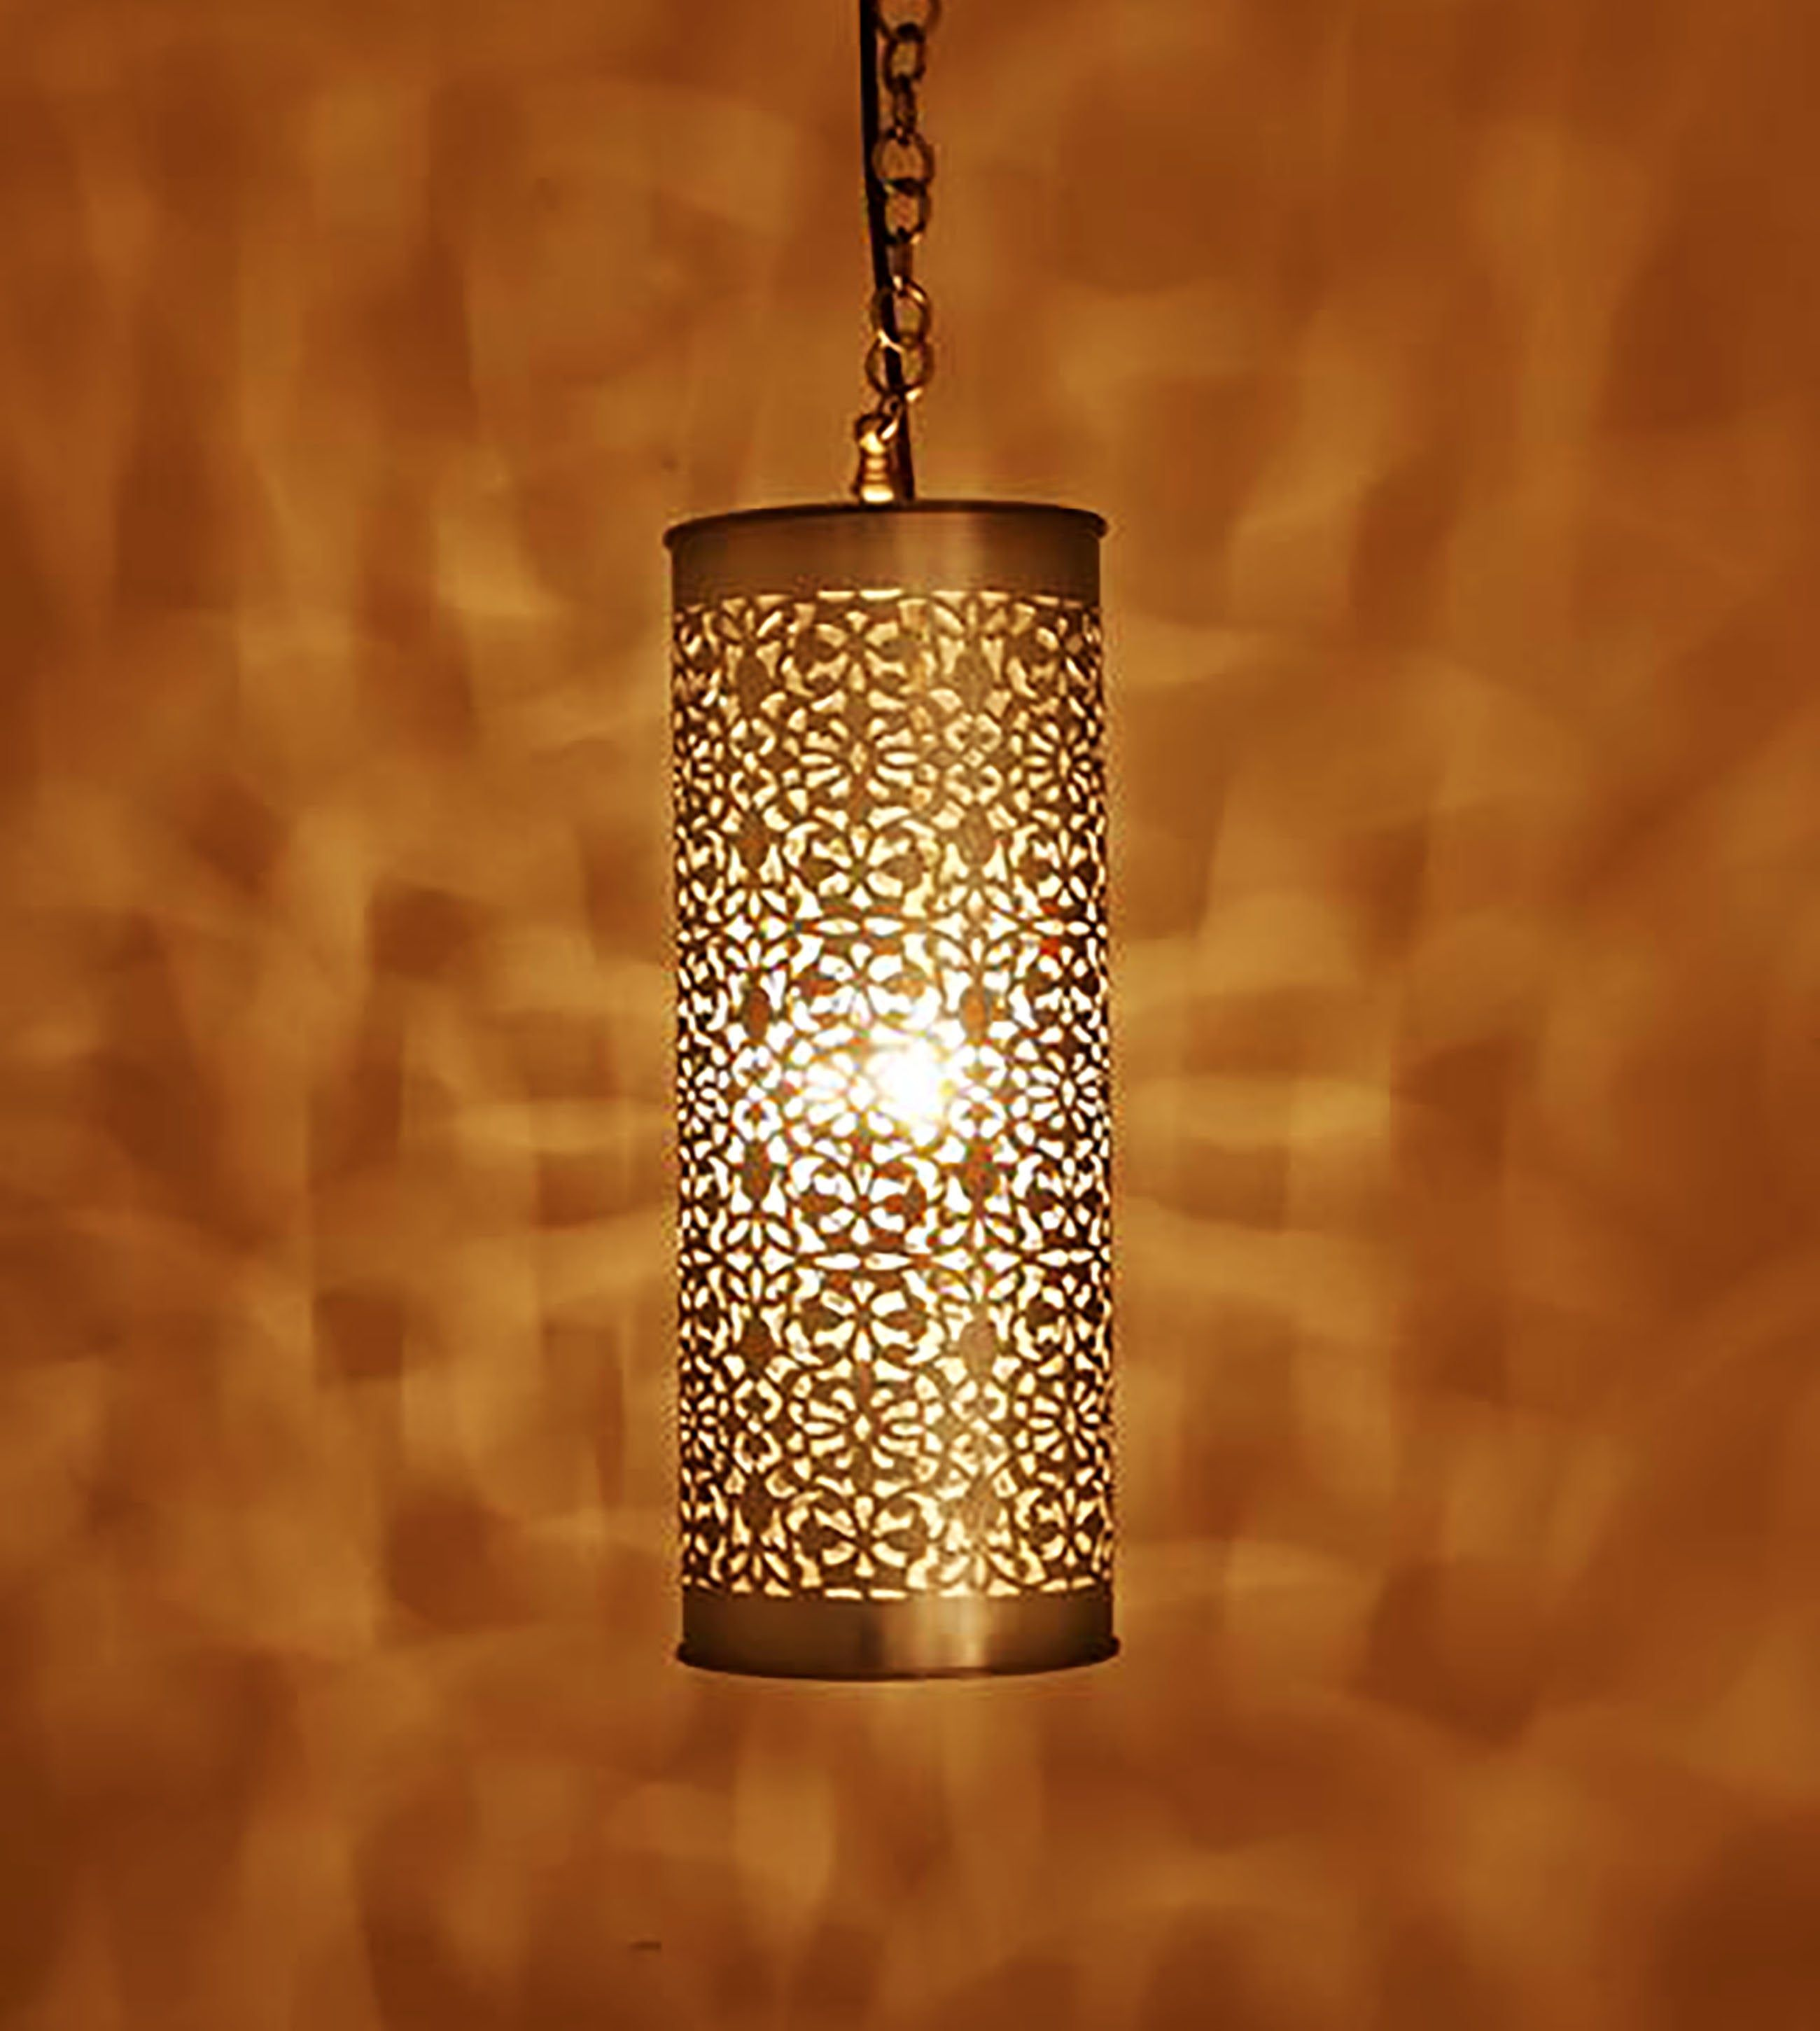 Moroccan Wall Sconce Light Night Lamp Brass Copper Ceilling Lamp